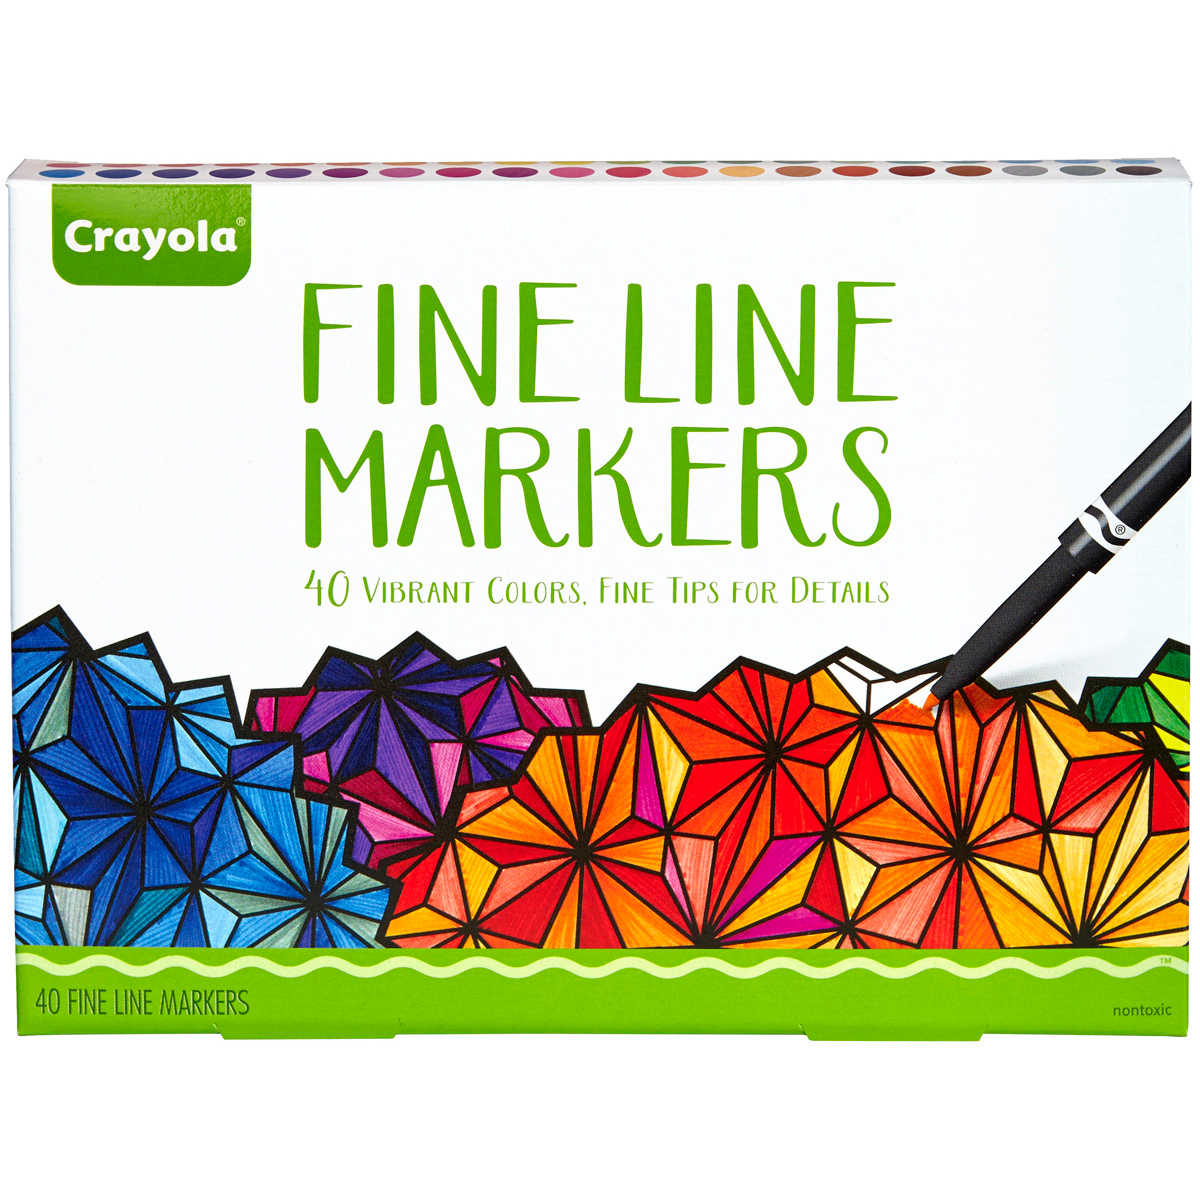 Crayola 40-Count Adult Coloring Fineline Markers, 40 Colors